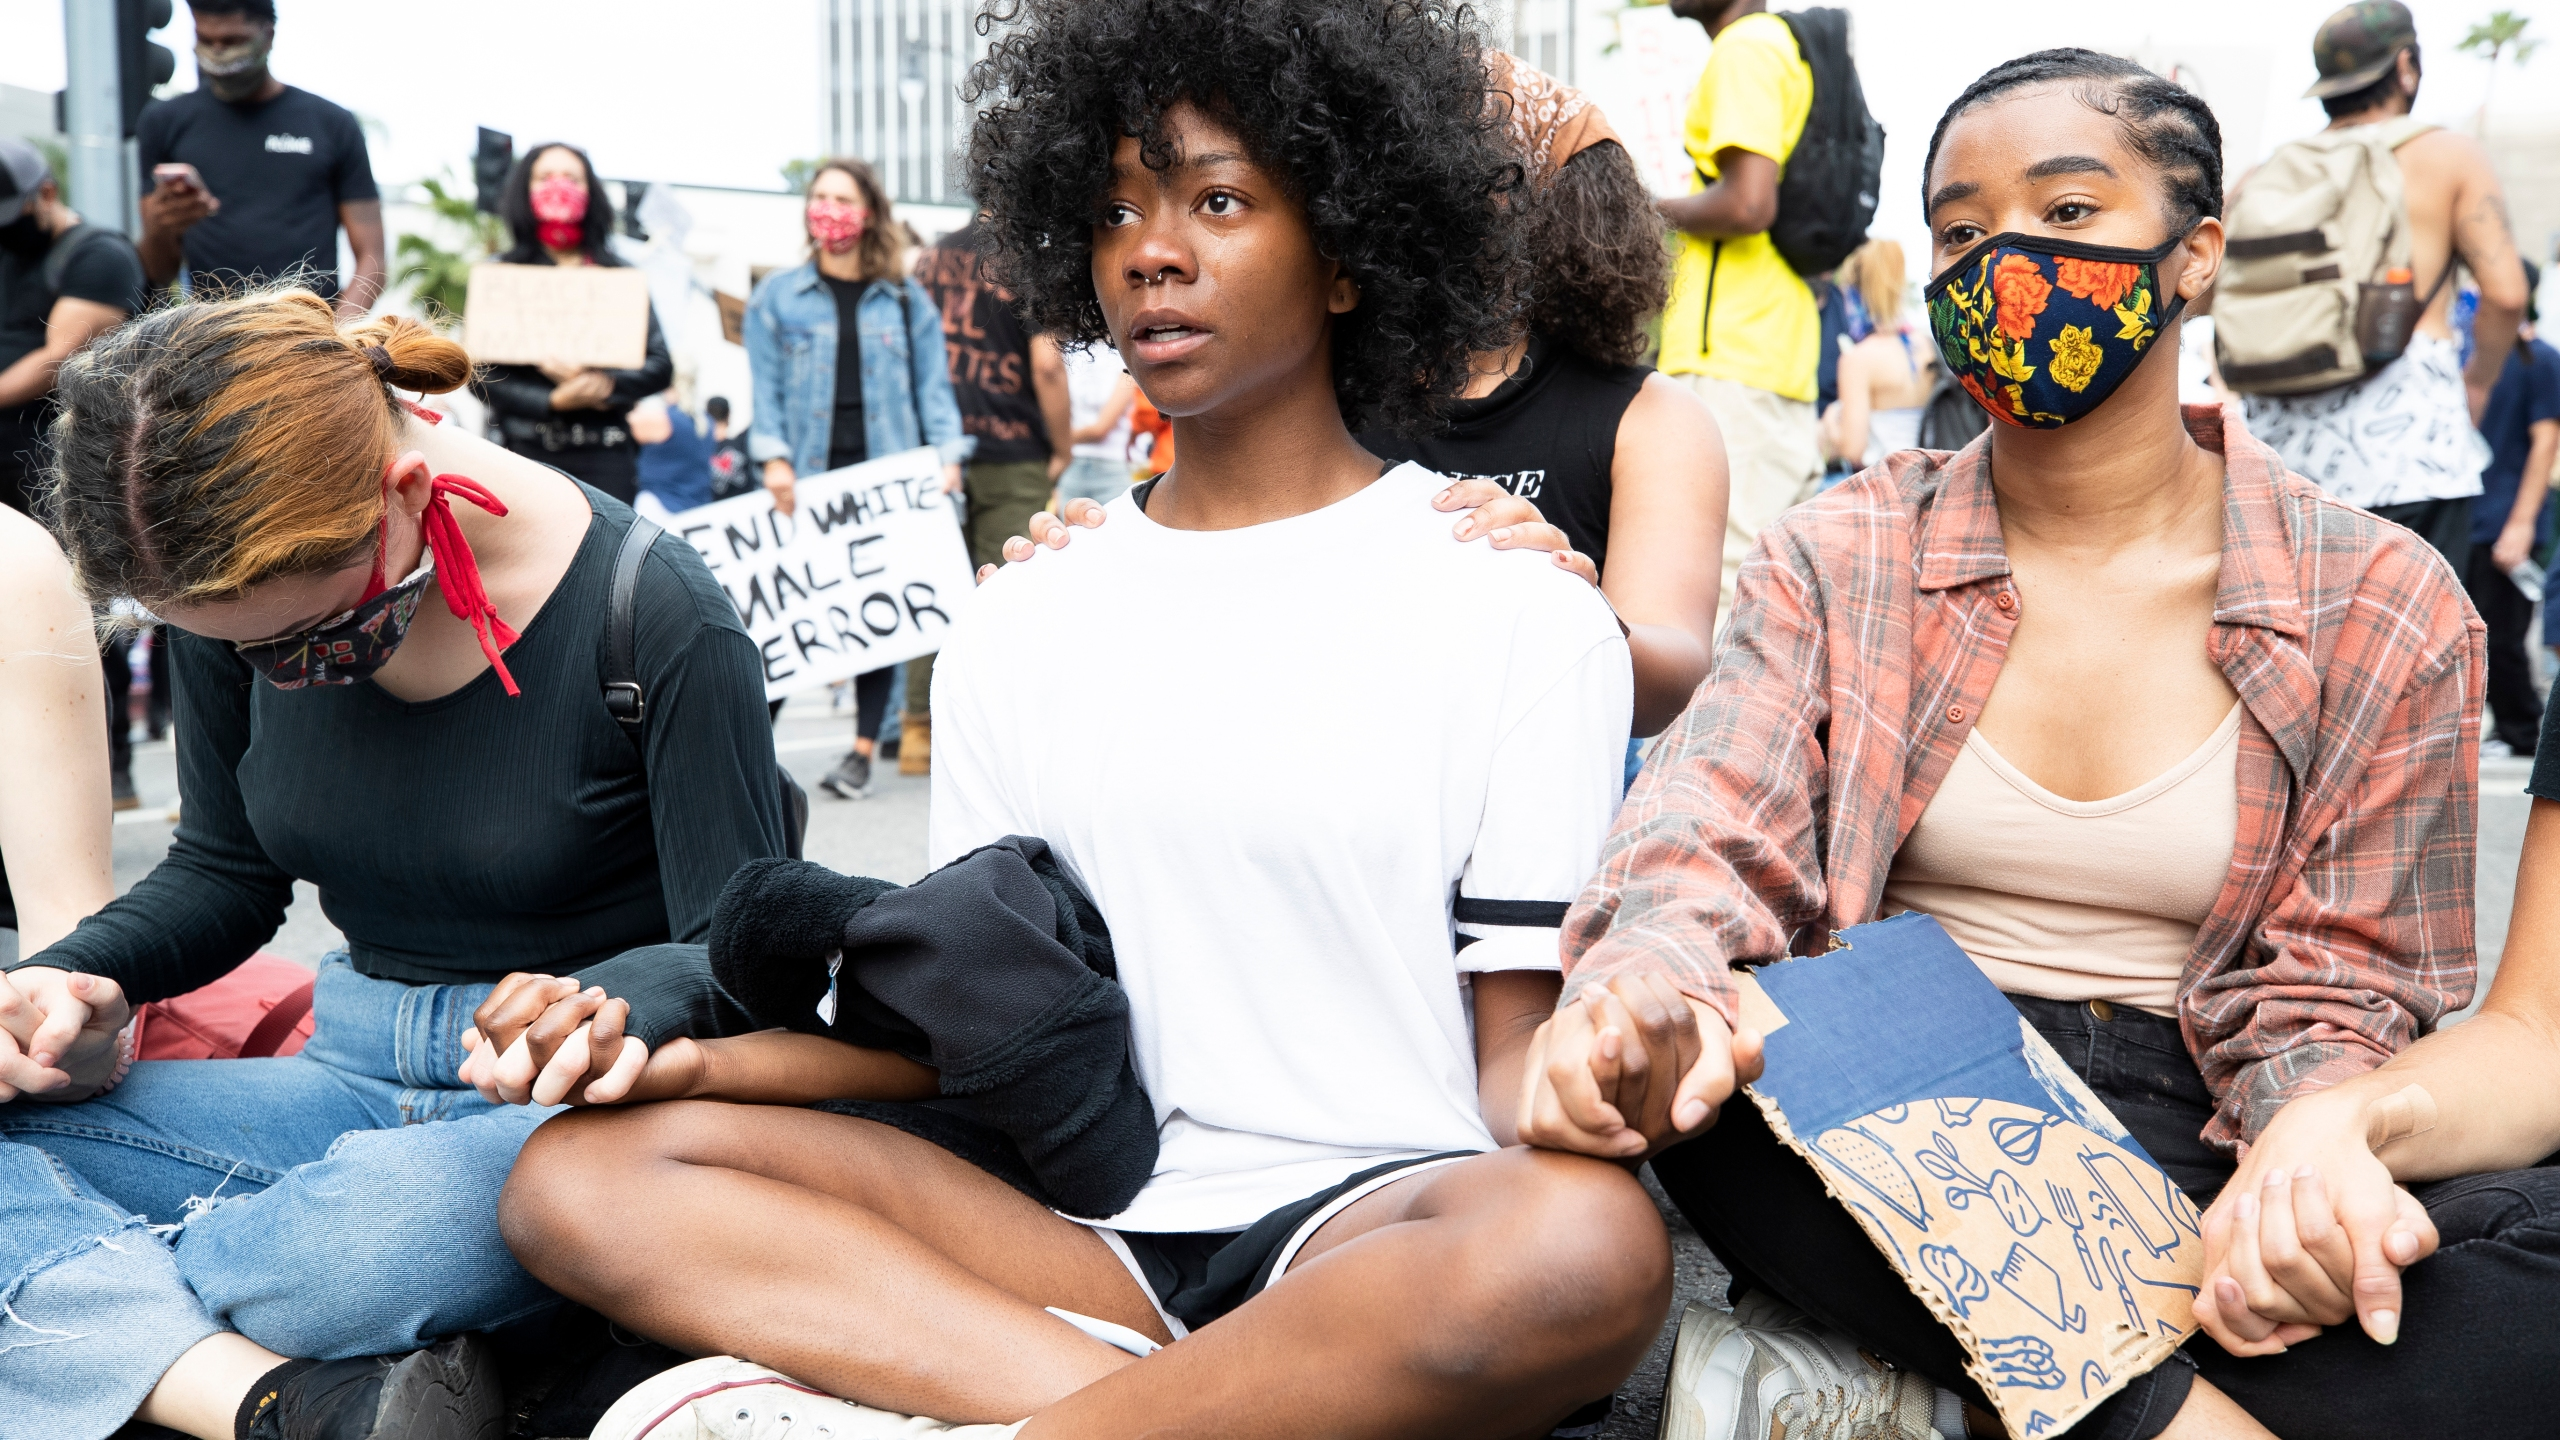 Demonstrators sit holding hands during a march on June 2, 2020 in Los Angeles. (Brent Stirton/Getty Images)